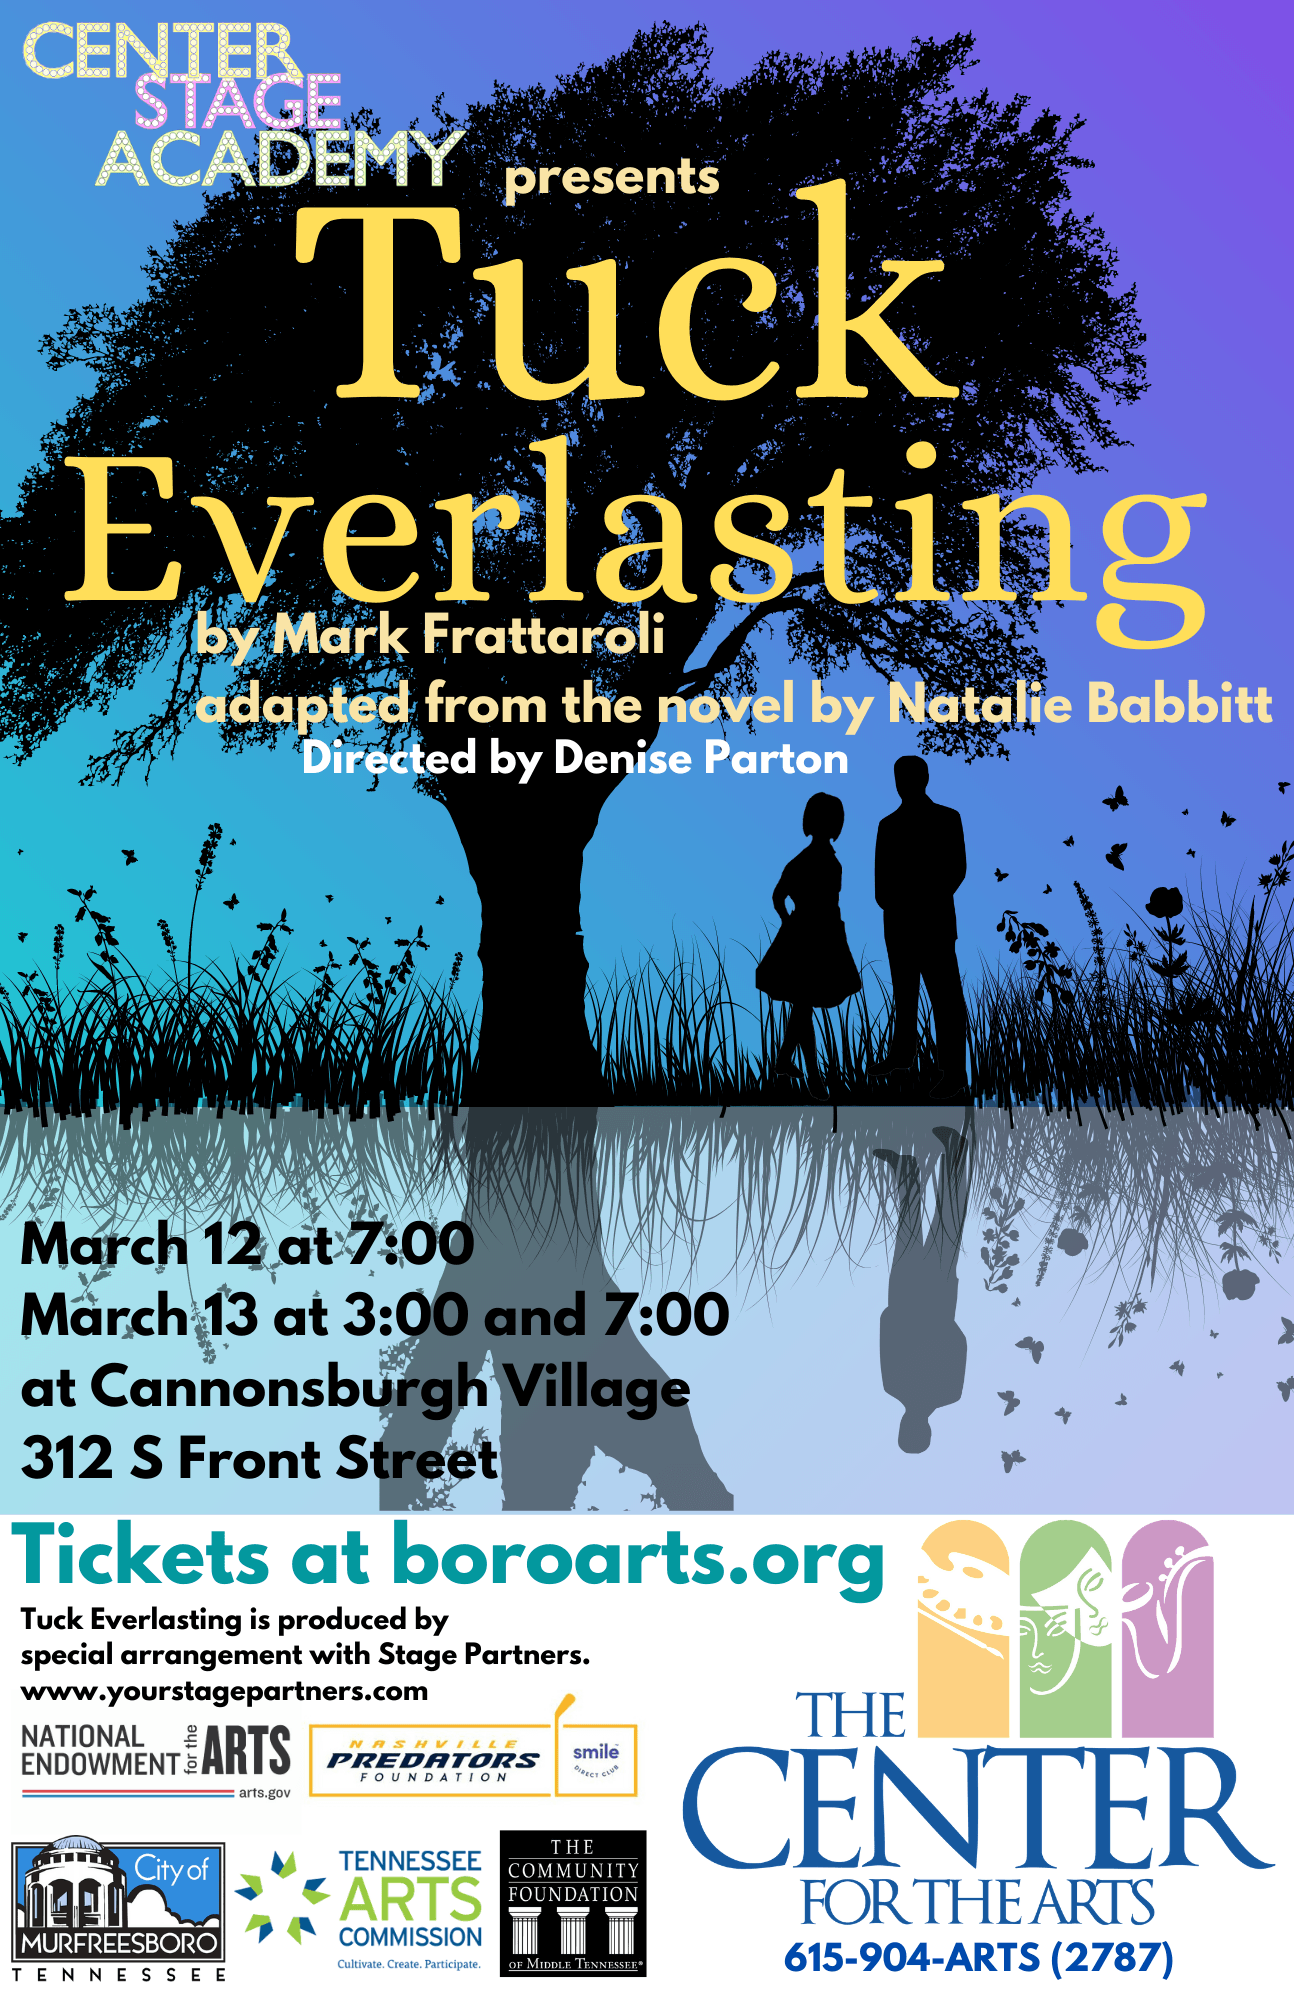 030121 Tuck Everlasting March 12-13  Poster